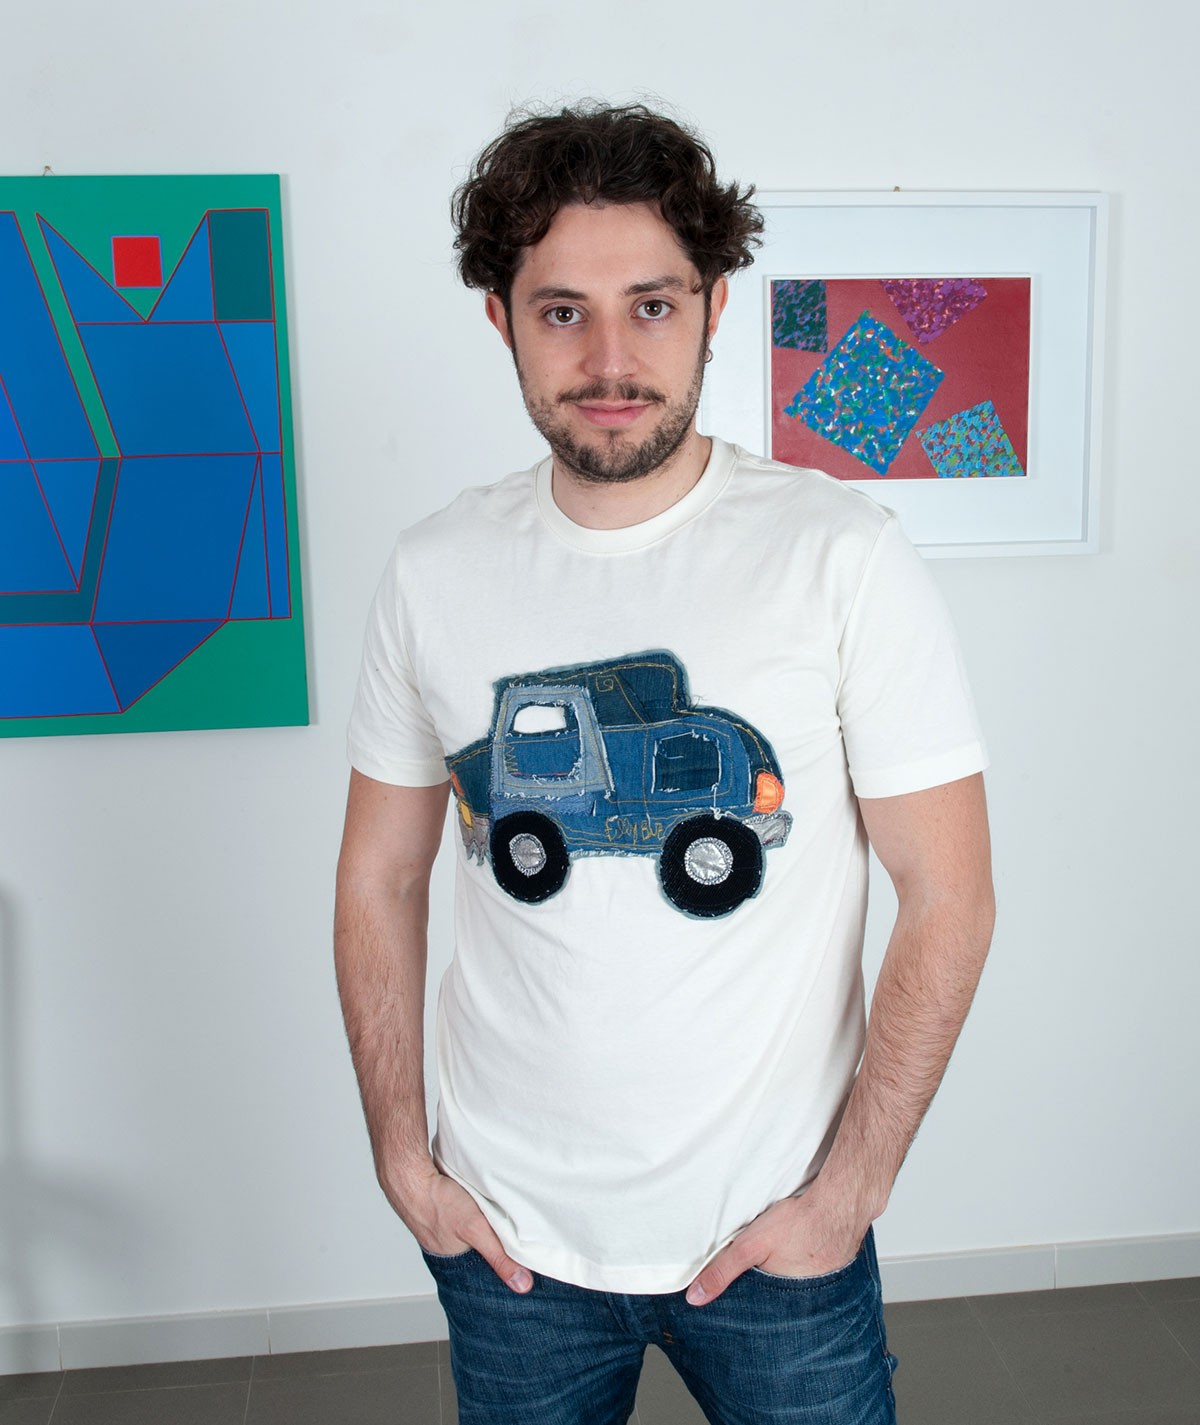 Denim car T-shirt